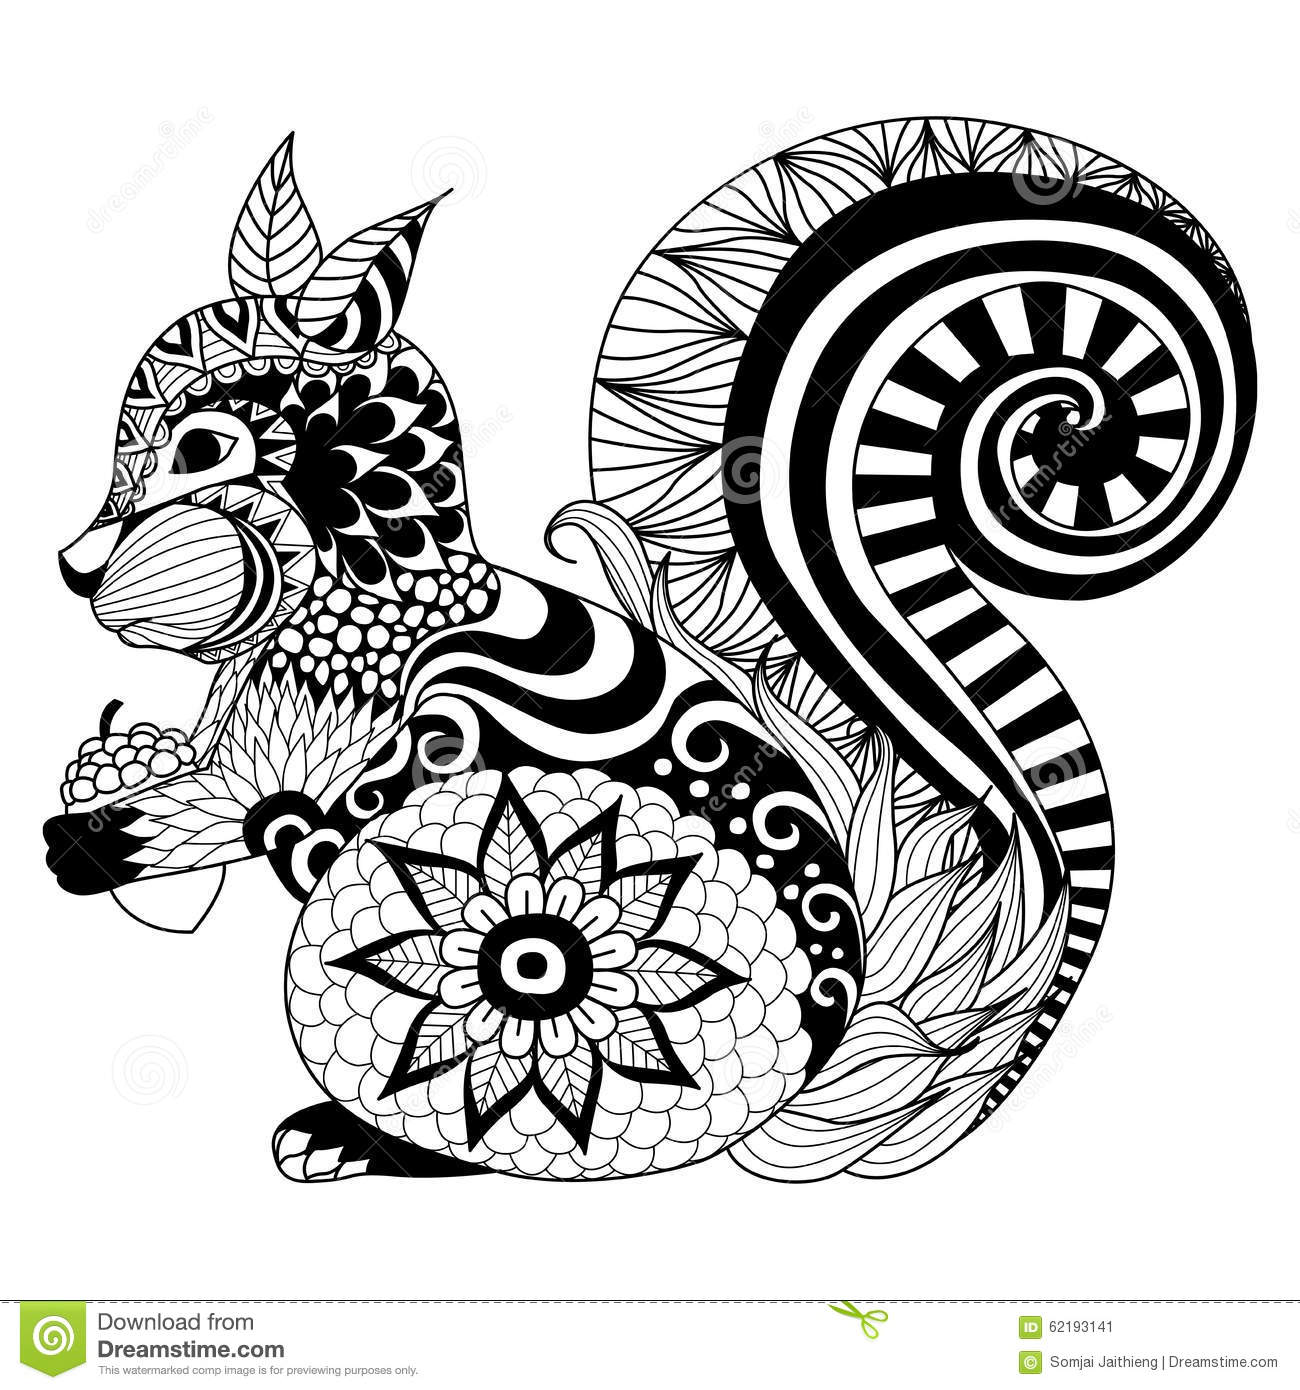 Squirrel Zentangle Style For Coloring Booktattoot Shirt Designlogo